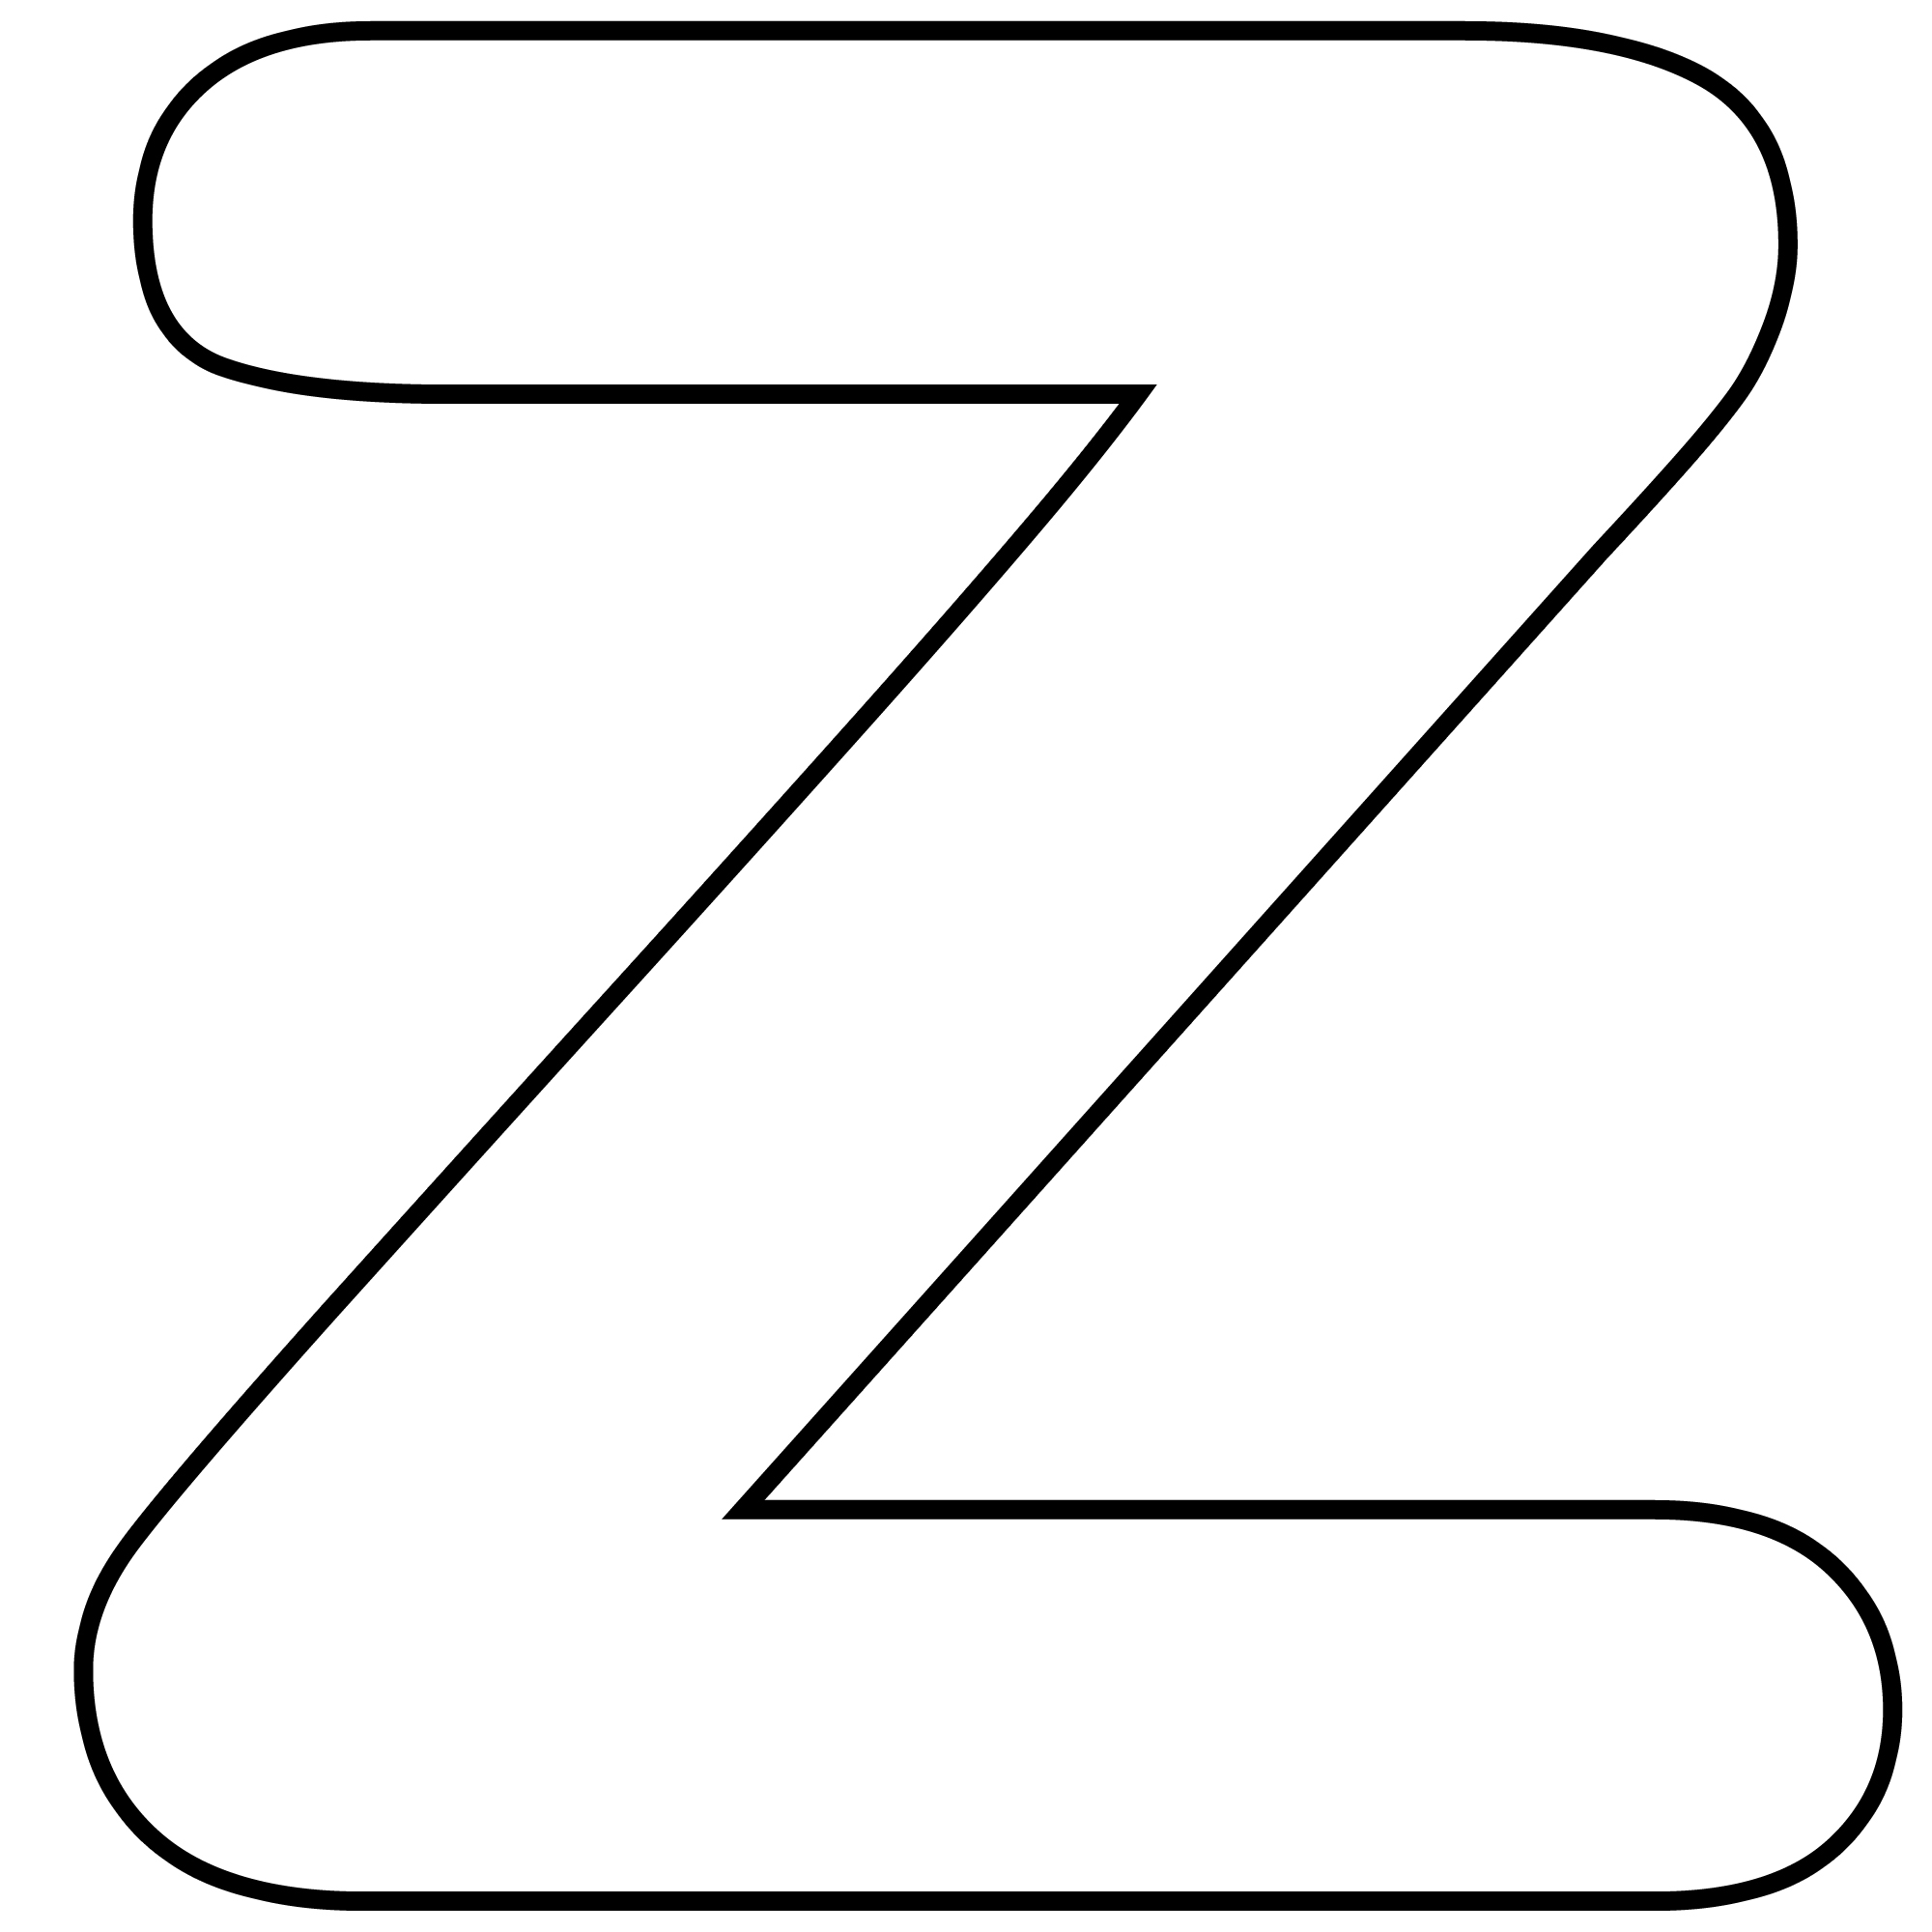 Zmusic on alphabet coloring pages color by letter e